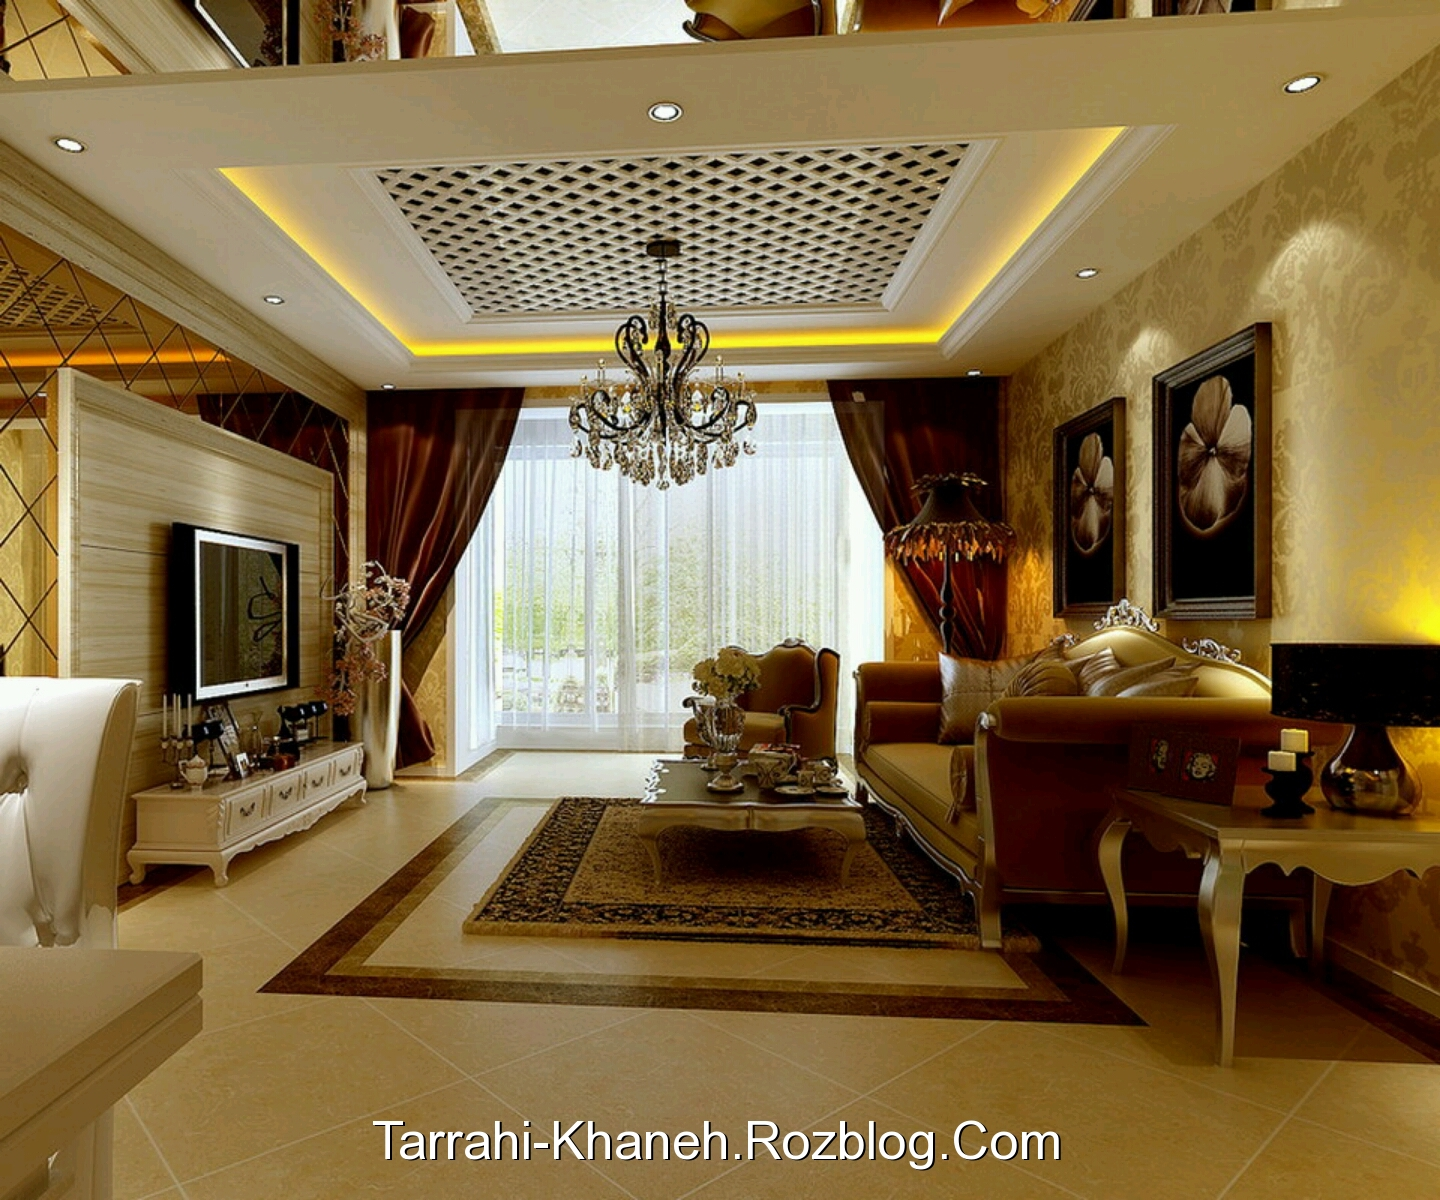 Luxury Ideas For Lavish Living Room Style: Http://rozup.ir/up/tarrahi-khaneh/Pictures/Decoration